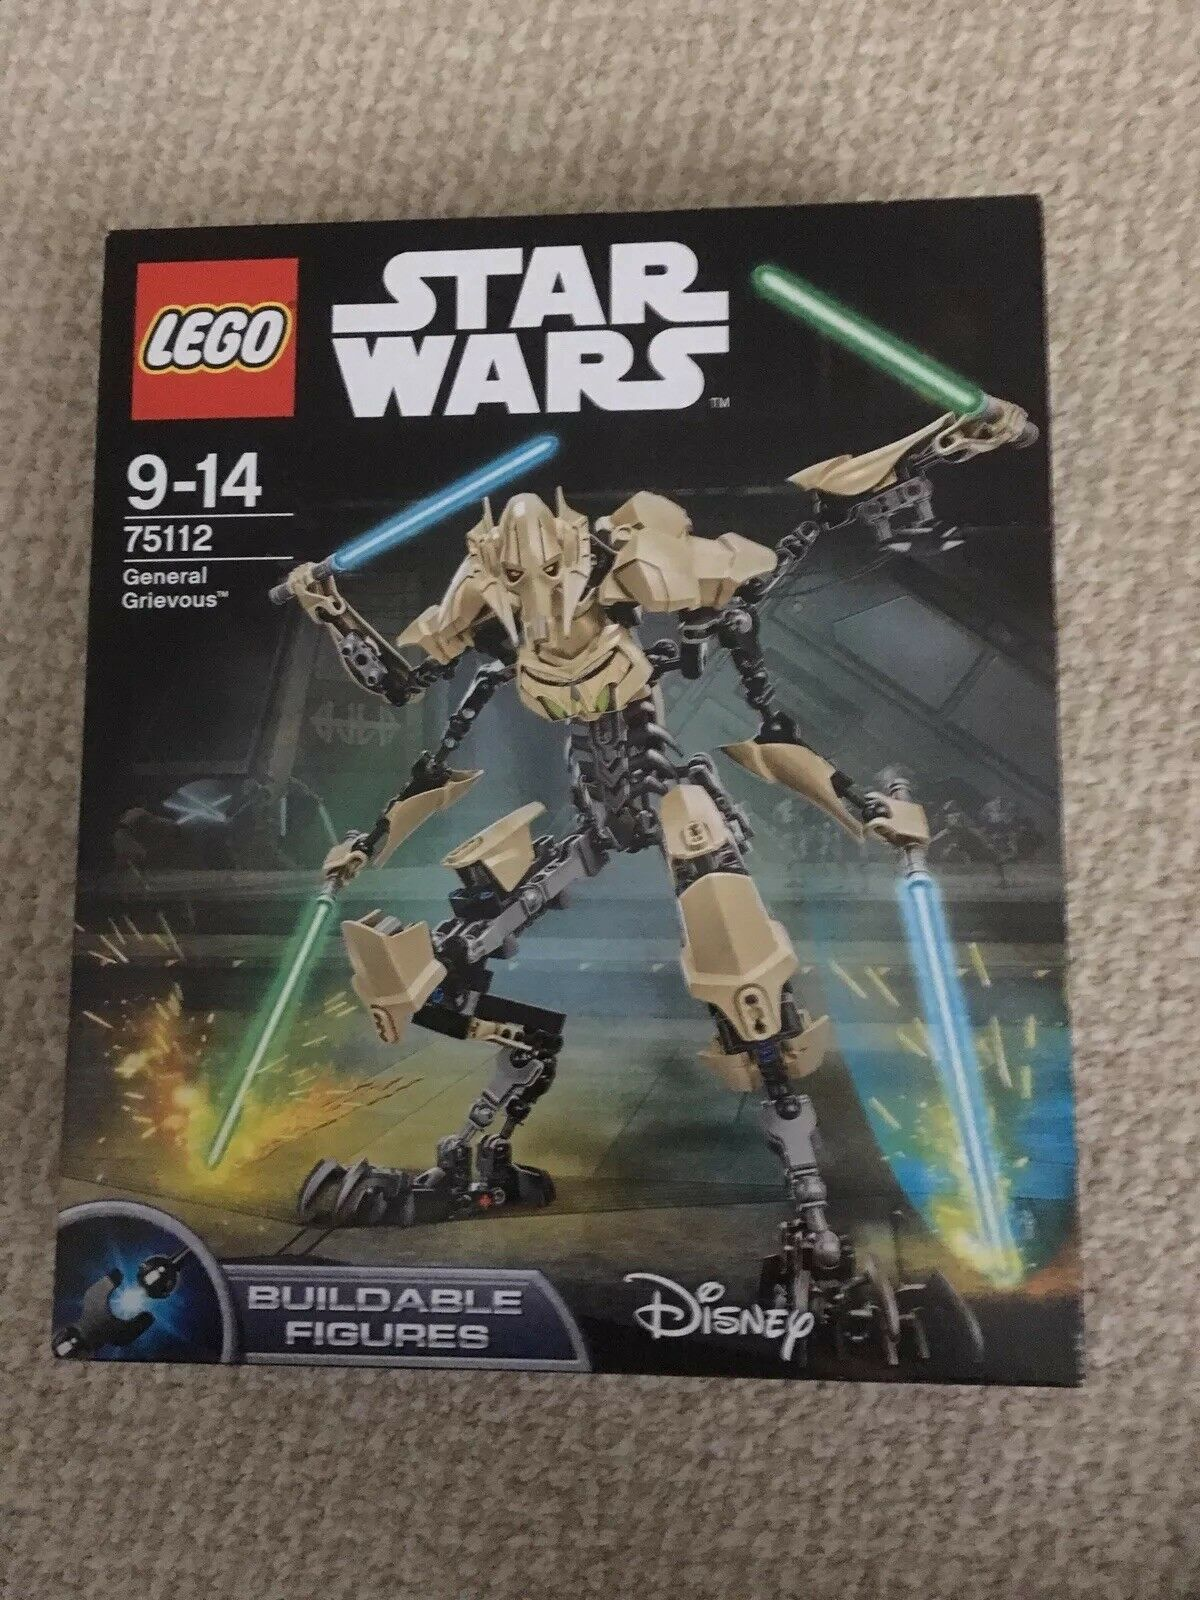 LEGO STAR WARS 75112. GENERAL GRIEVOUS NEW. SEALED.